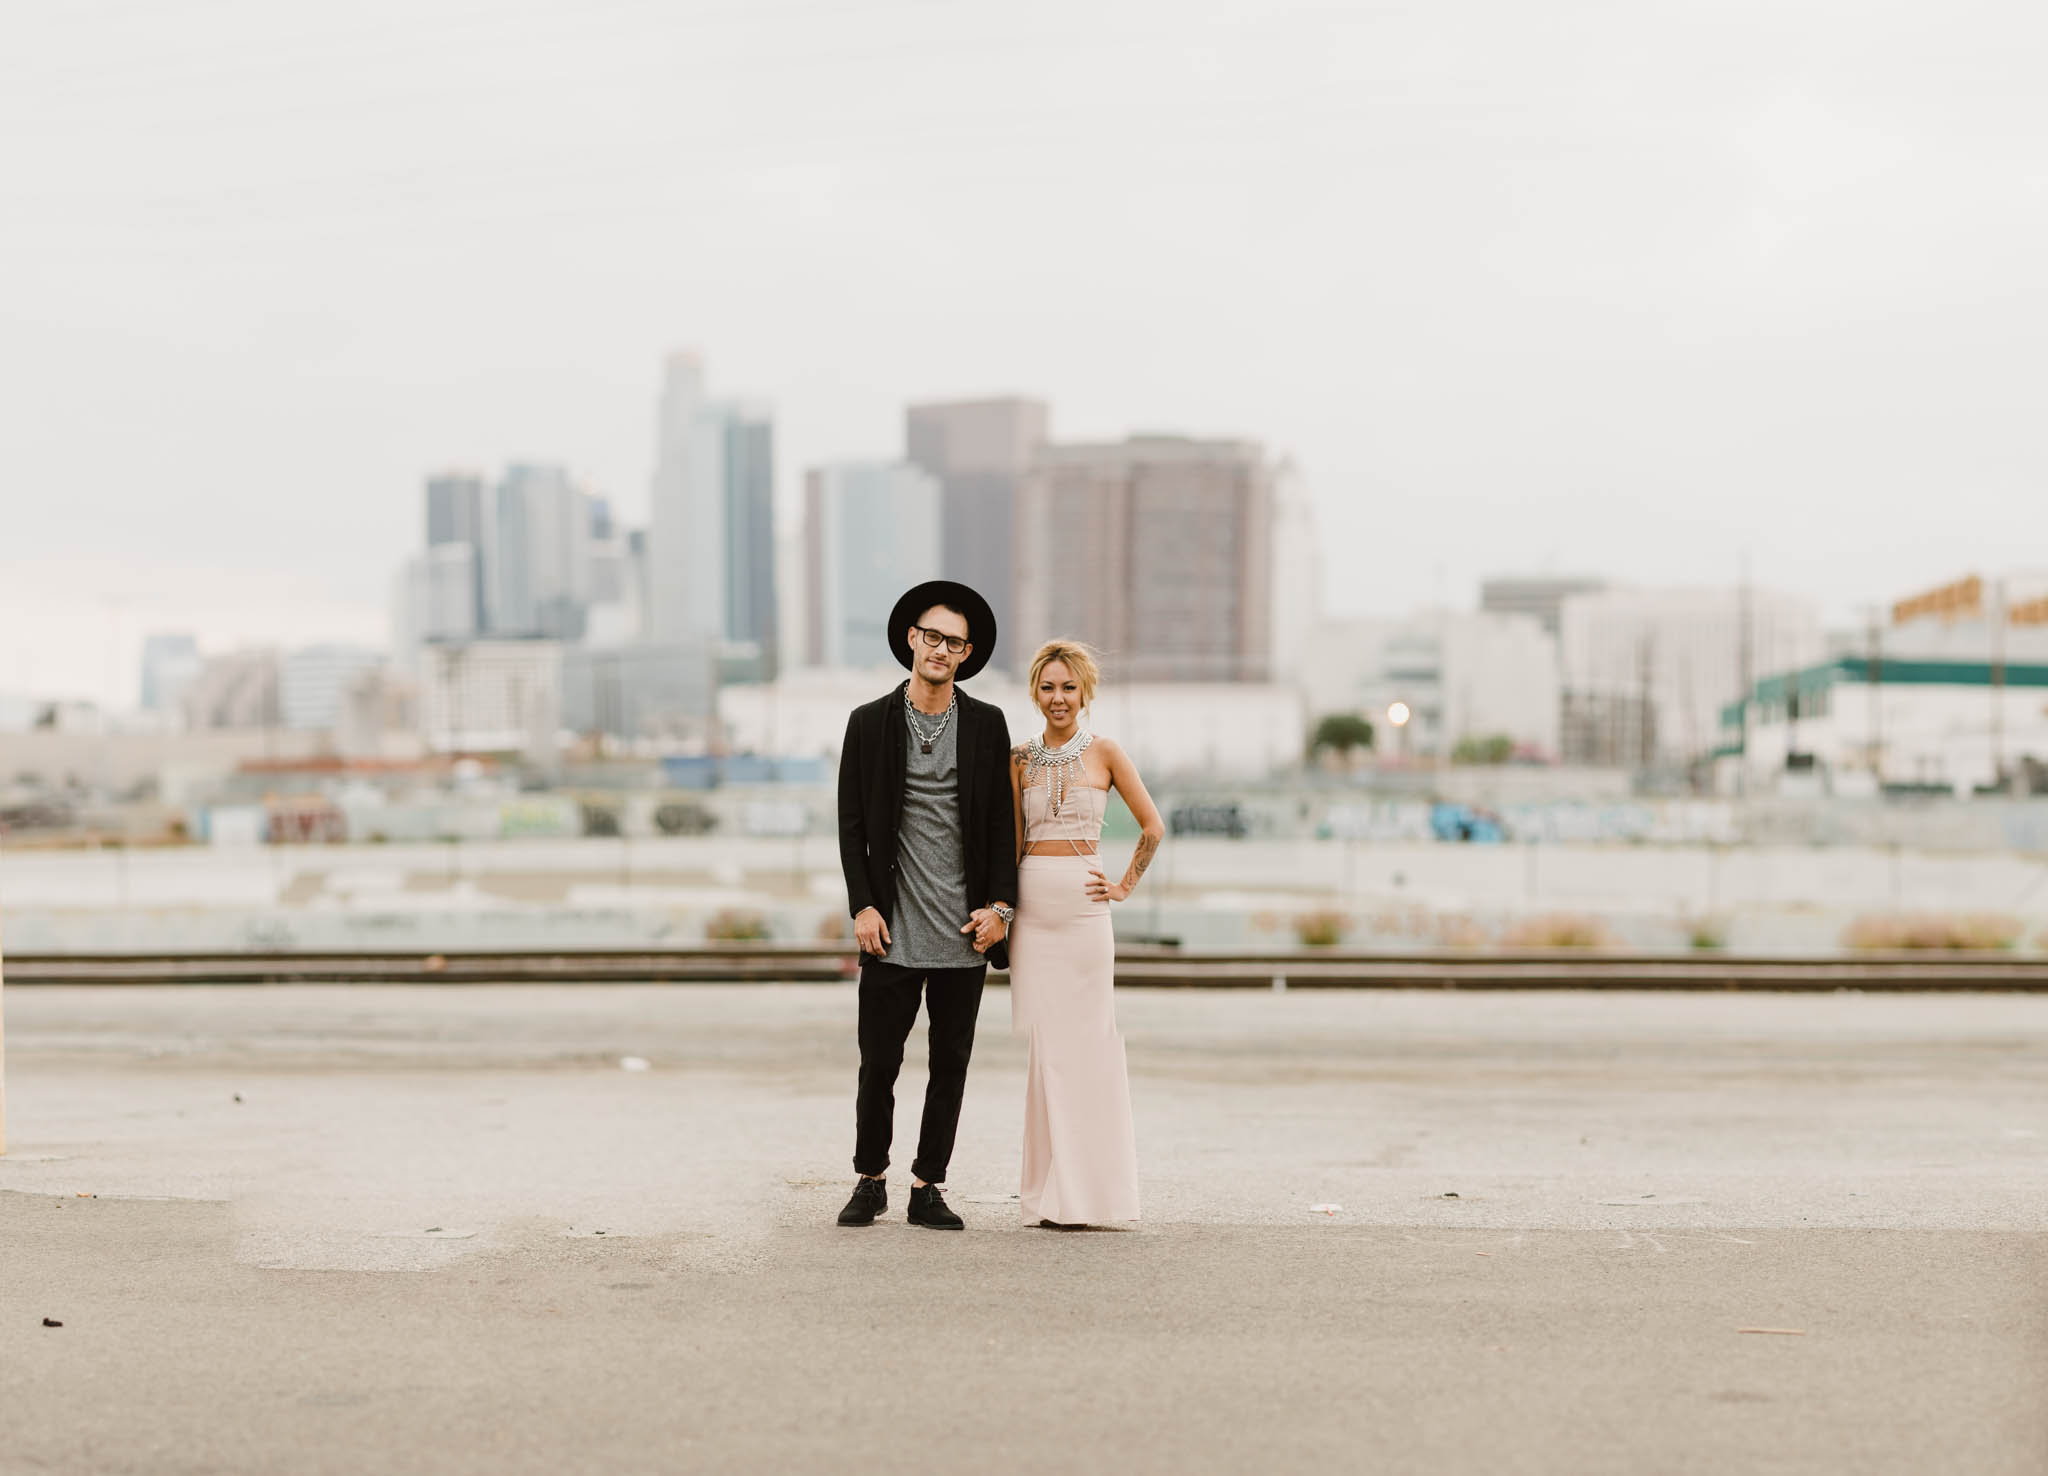 ©Isaiah-&-Taylor-Photography---Downtown-Los-Angeles-Skyline-Engagement-024.jpg